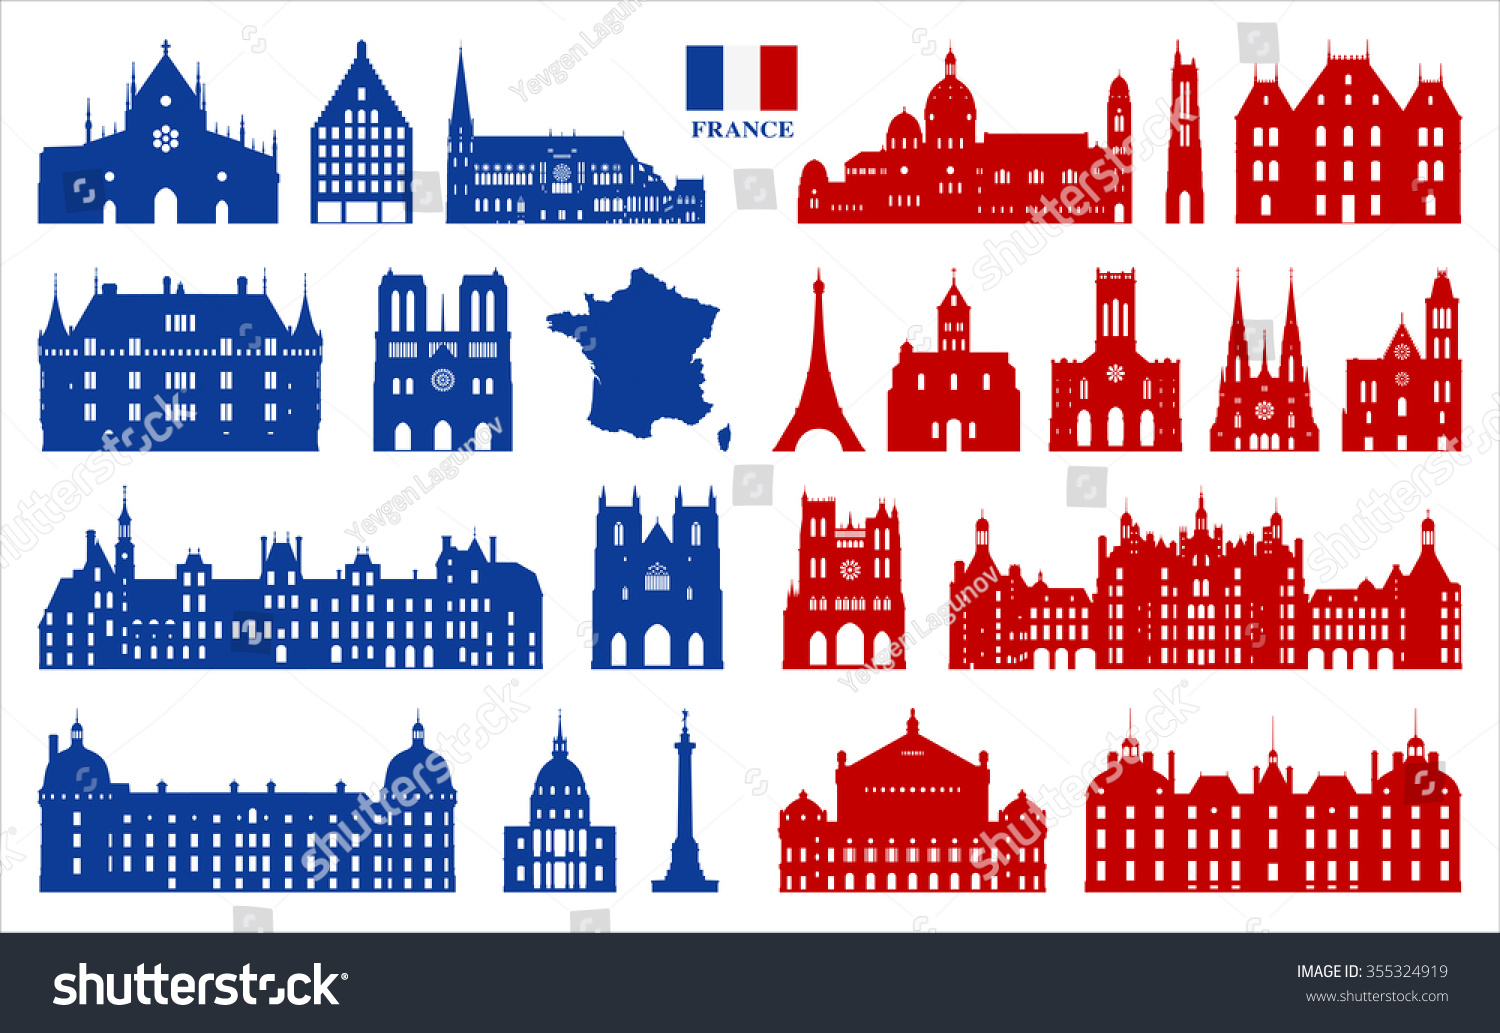 French architecture symbols france stock vector 355324919 french architecture and symbols of france biocorpaavc